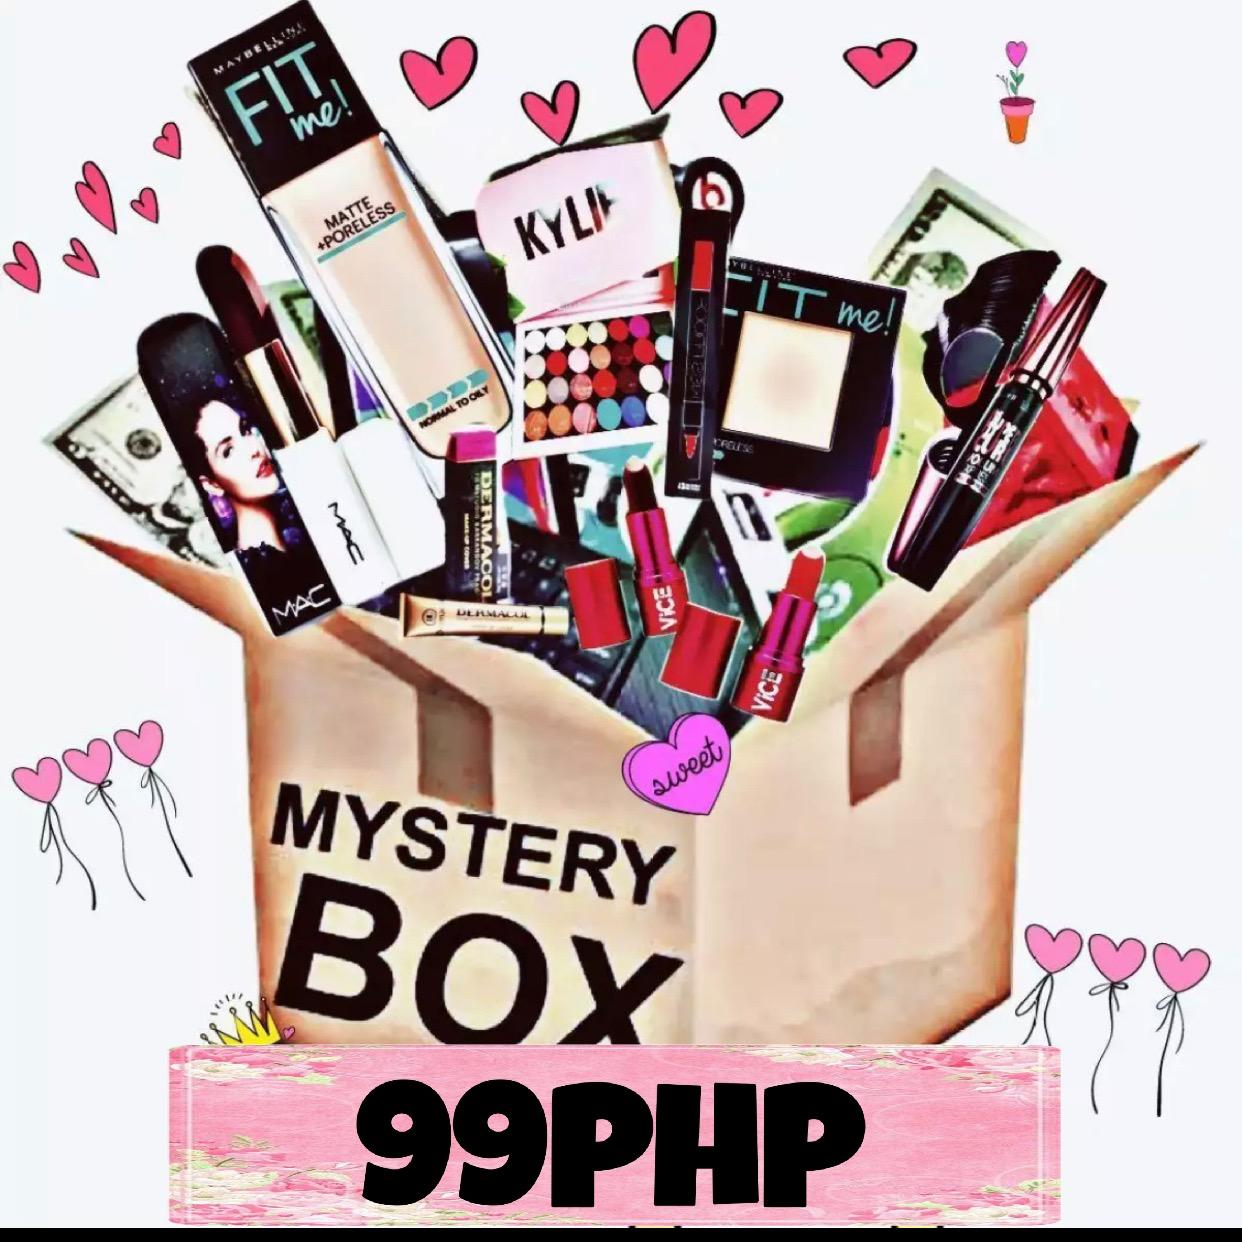 CICIMART MYSTERY BOX 3 FOR 99 Philippines